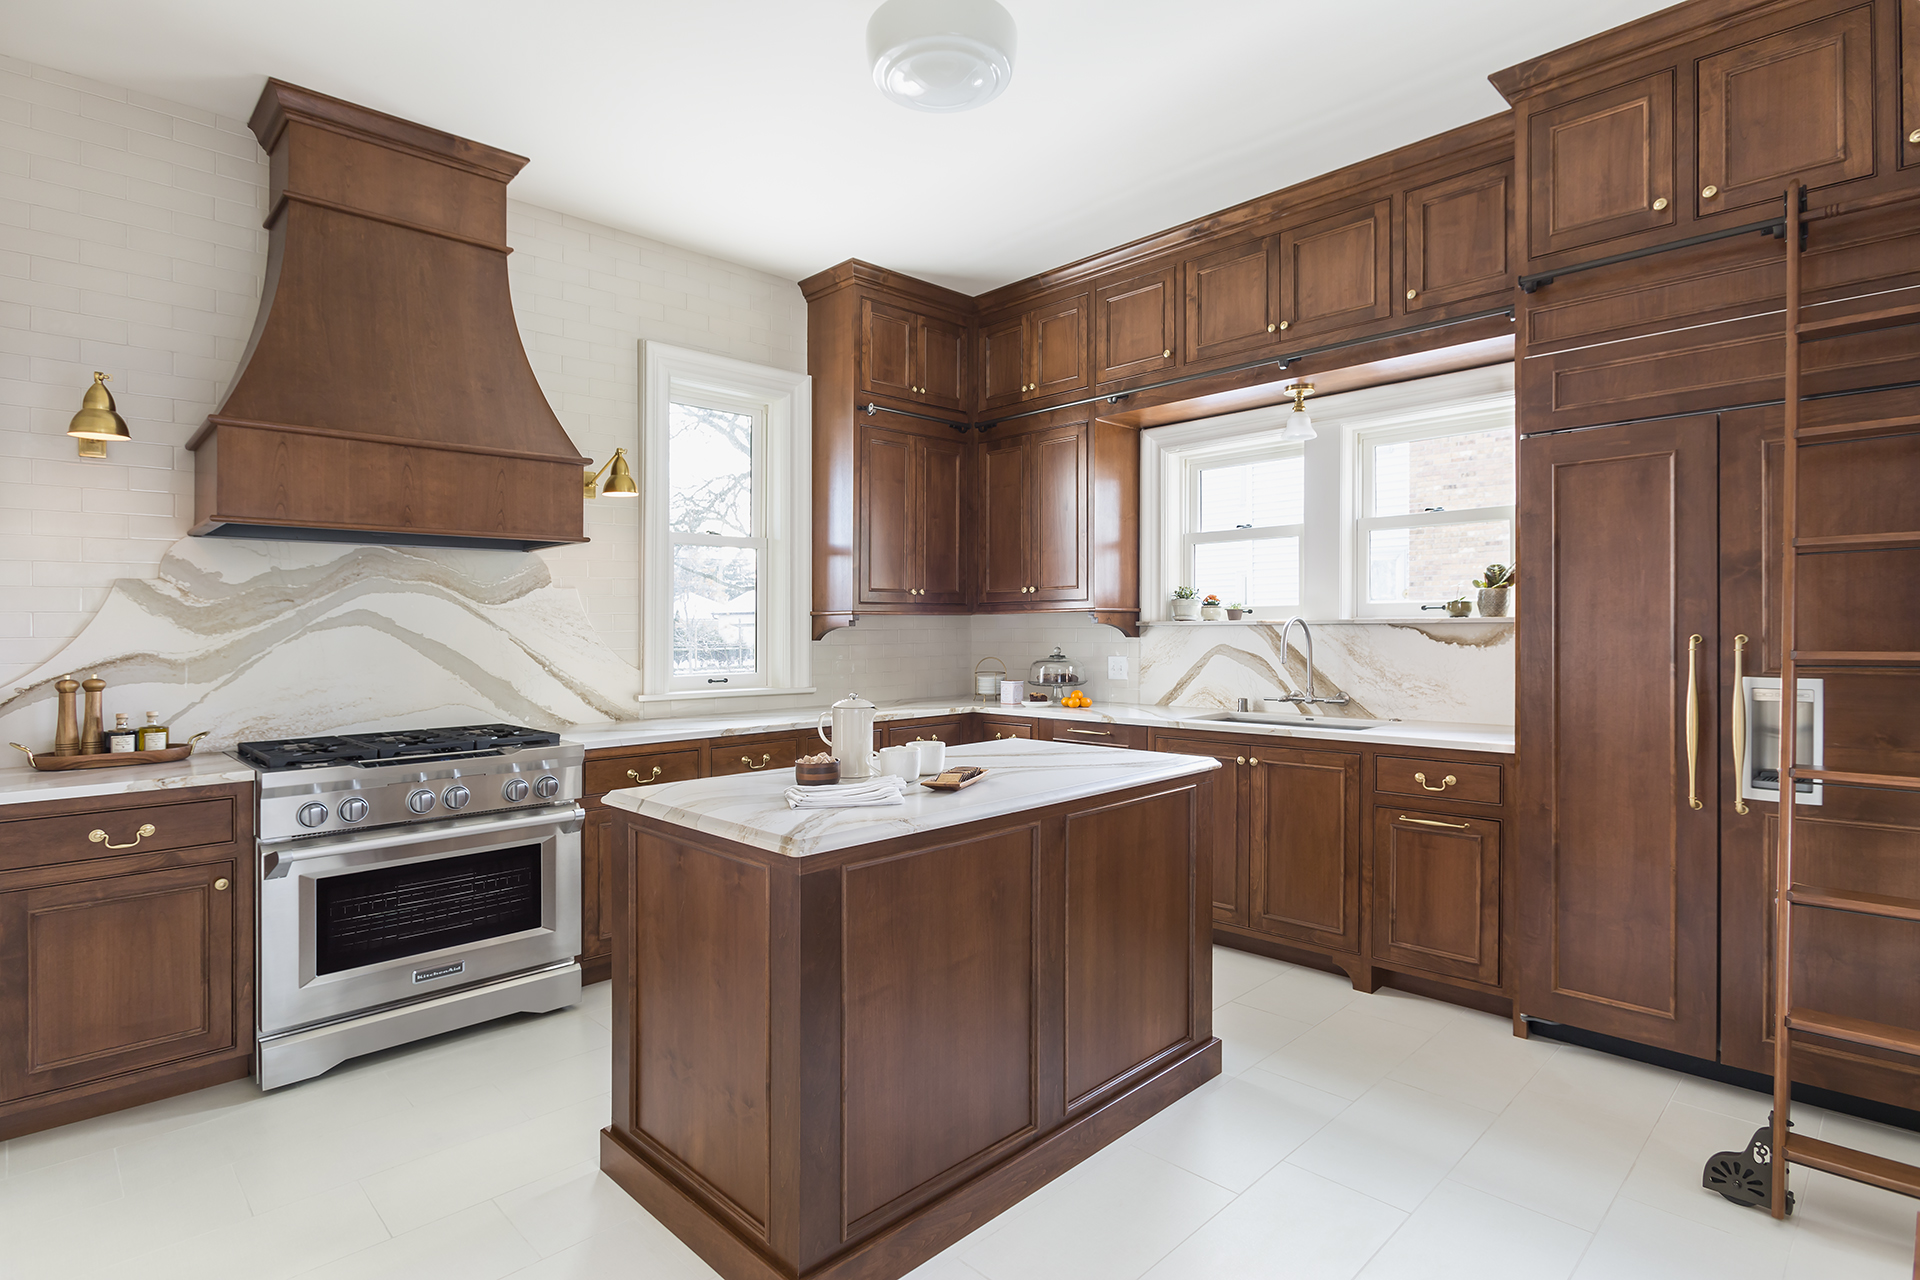 Light-colored floors and backsplash contrast with the darker-stained cabinetry.